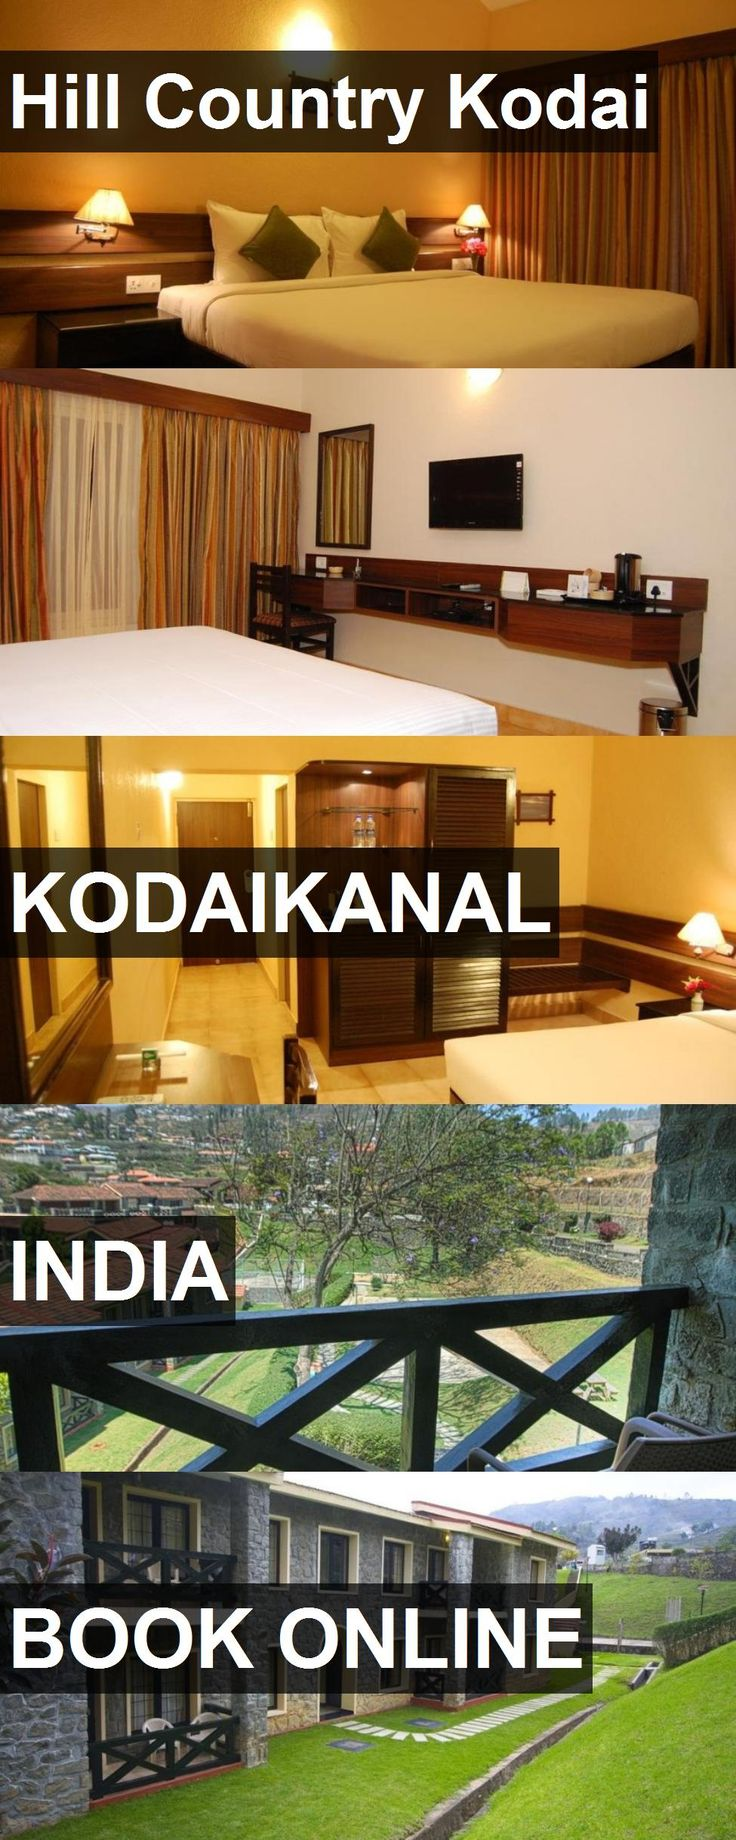 Hotel Hill Country Kodai in Kodaikanal, India. For more information, photos, reviews and best prices please follow the link. #India #Kodaikanal #travel #vacation #hotel